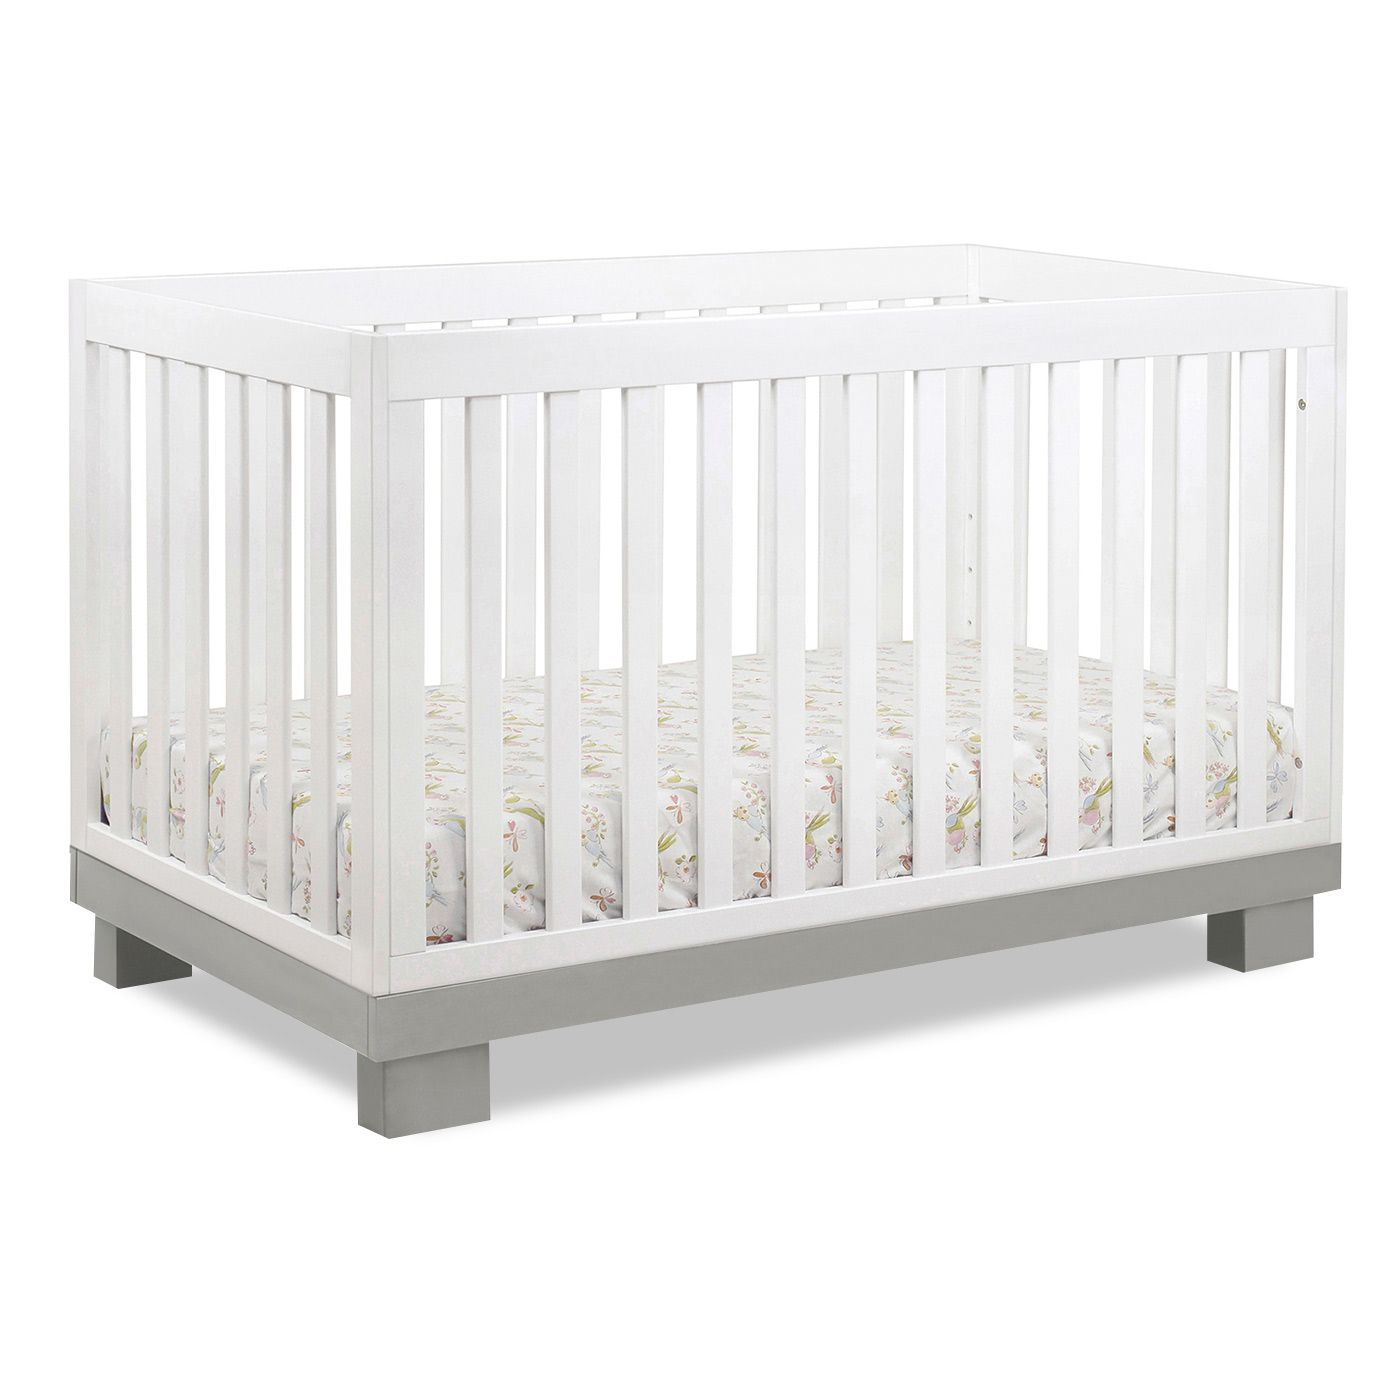 baby gliders have cribs collection skip in modern an contemporary mercer filled bedroom with convertible of reviews glider awesome crib nursery modo best babyletto hudson rocker buy